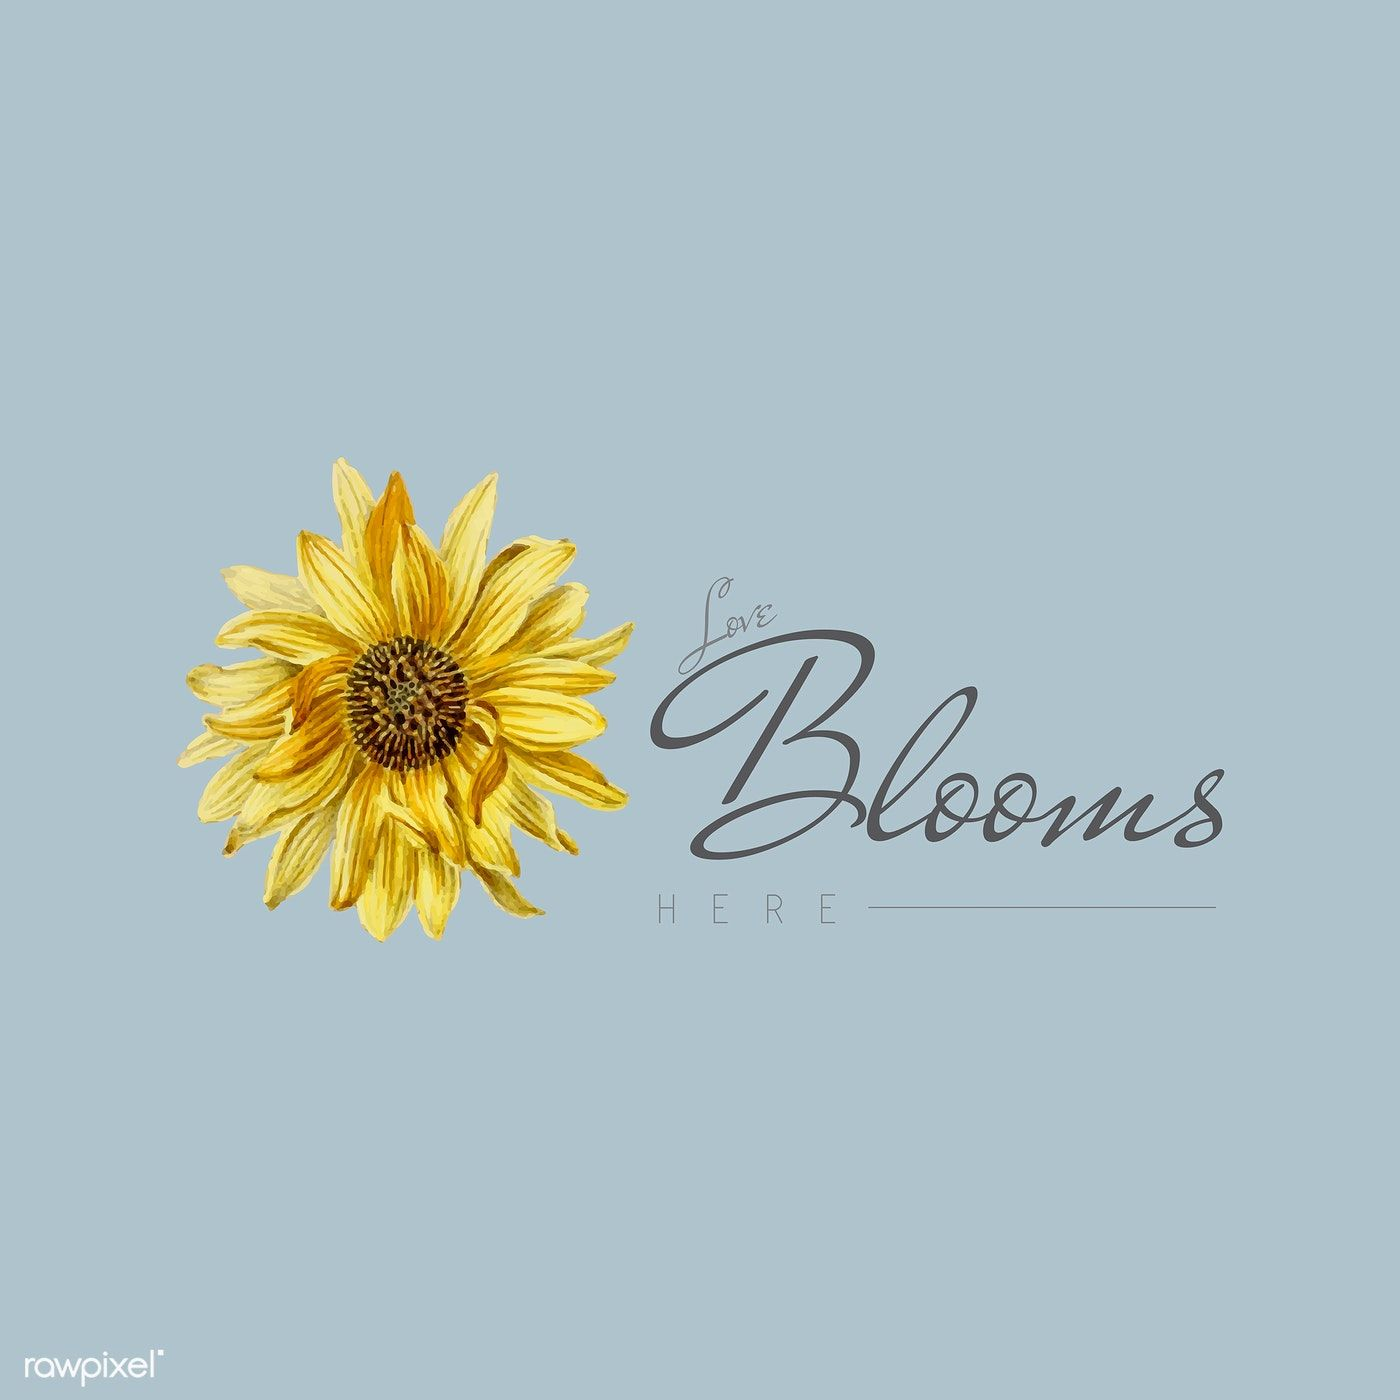 Download Love blooms here with sunflower vector   free image by ...